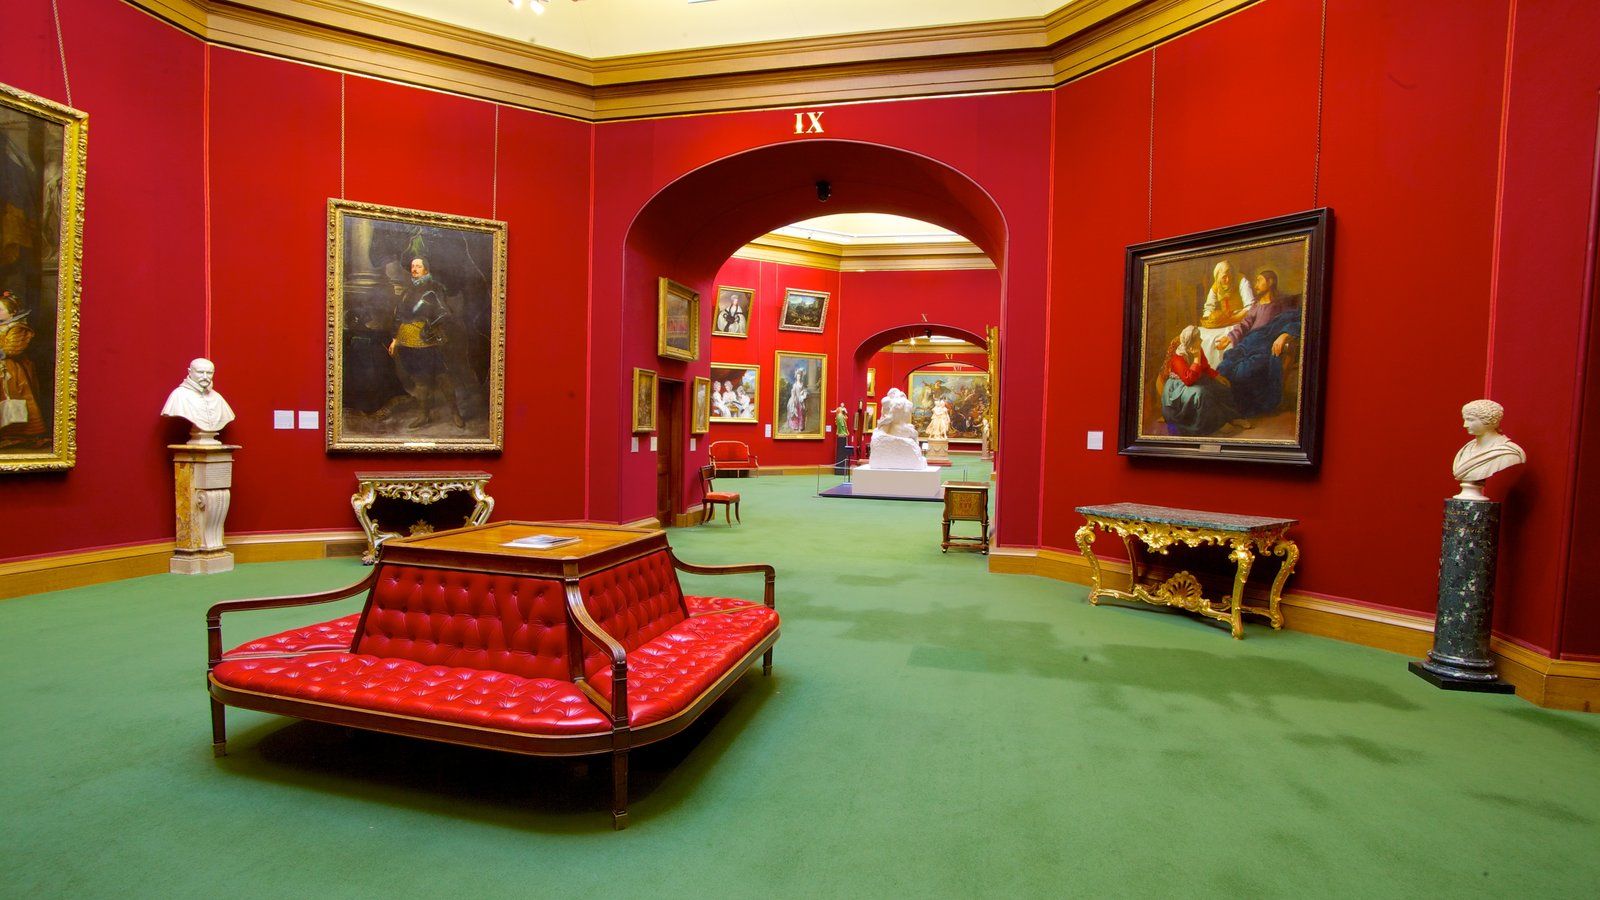 National Gallery of Scotland showing art and interior views